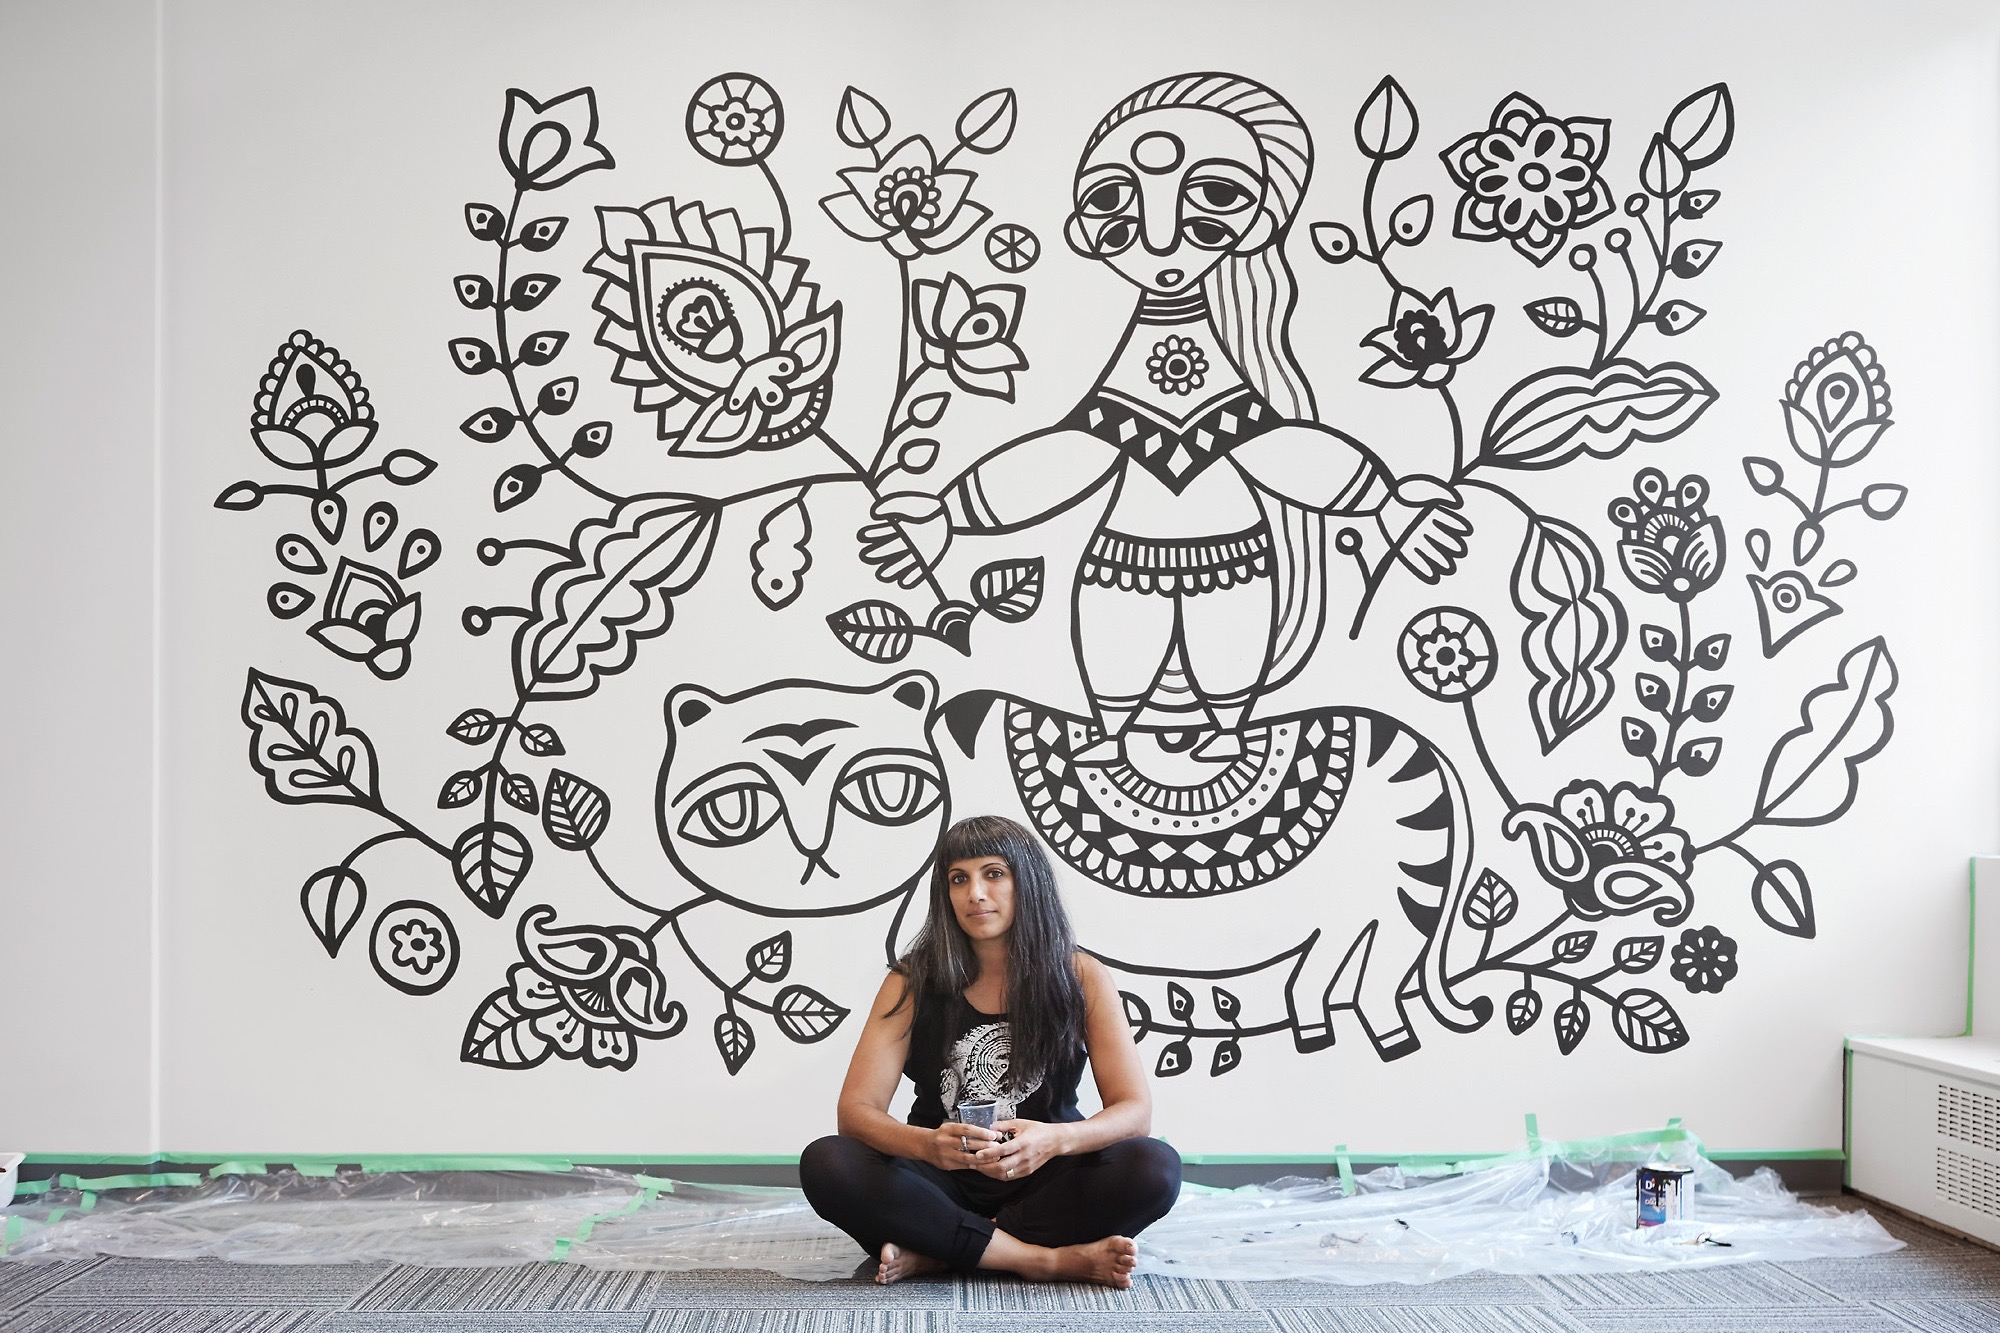 Lady On Tiger  (8' x 10') This mural was created through the Thrive Art Studio Mural Residency Program, Vancouver, 2017 Located at The Profile Co-Working Business Club, 535 Thurlow Street Photo credit: Laara Cerman